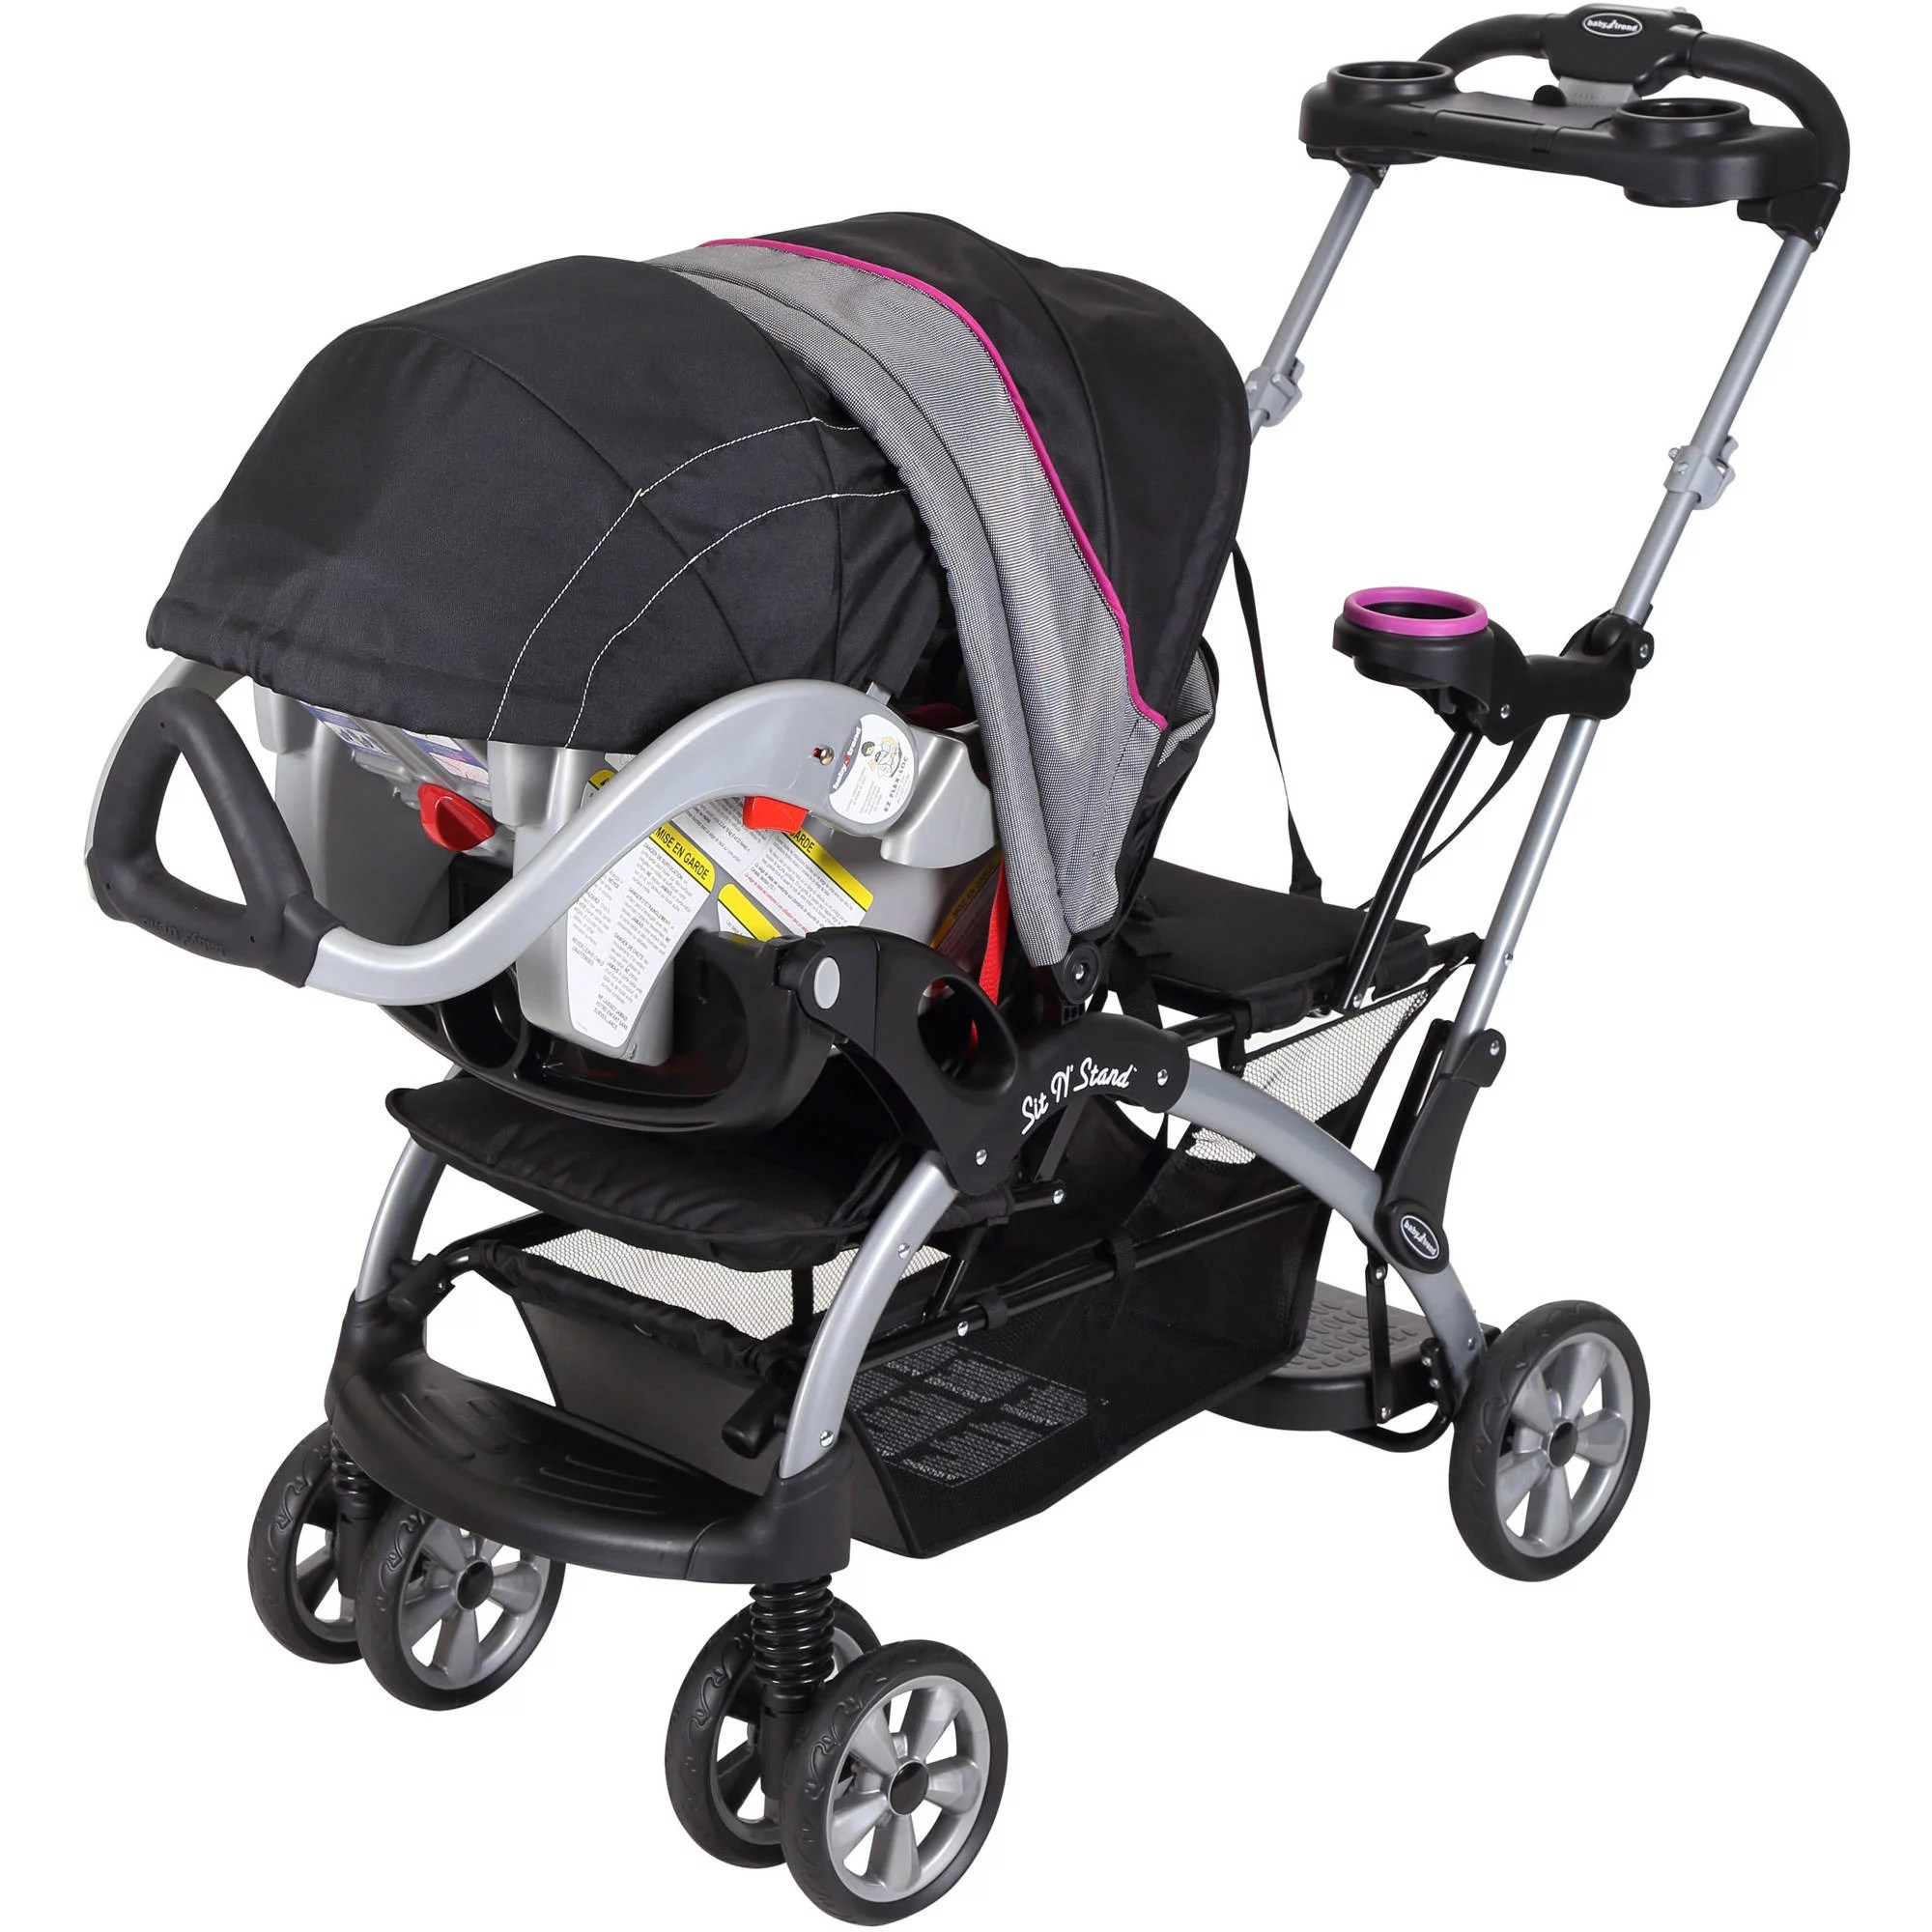 Stroller Travel System Ebay Baby Strollers For Two Sit 39;n Stand Ultra Double Stroller